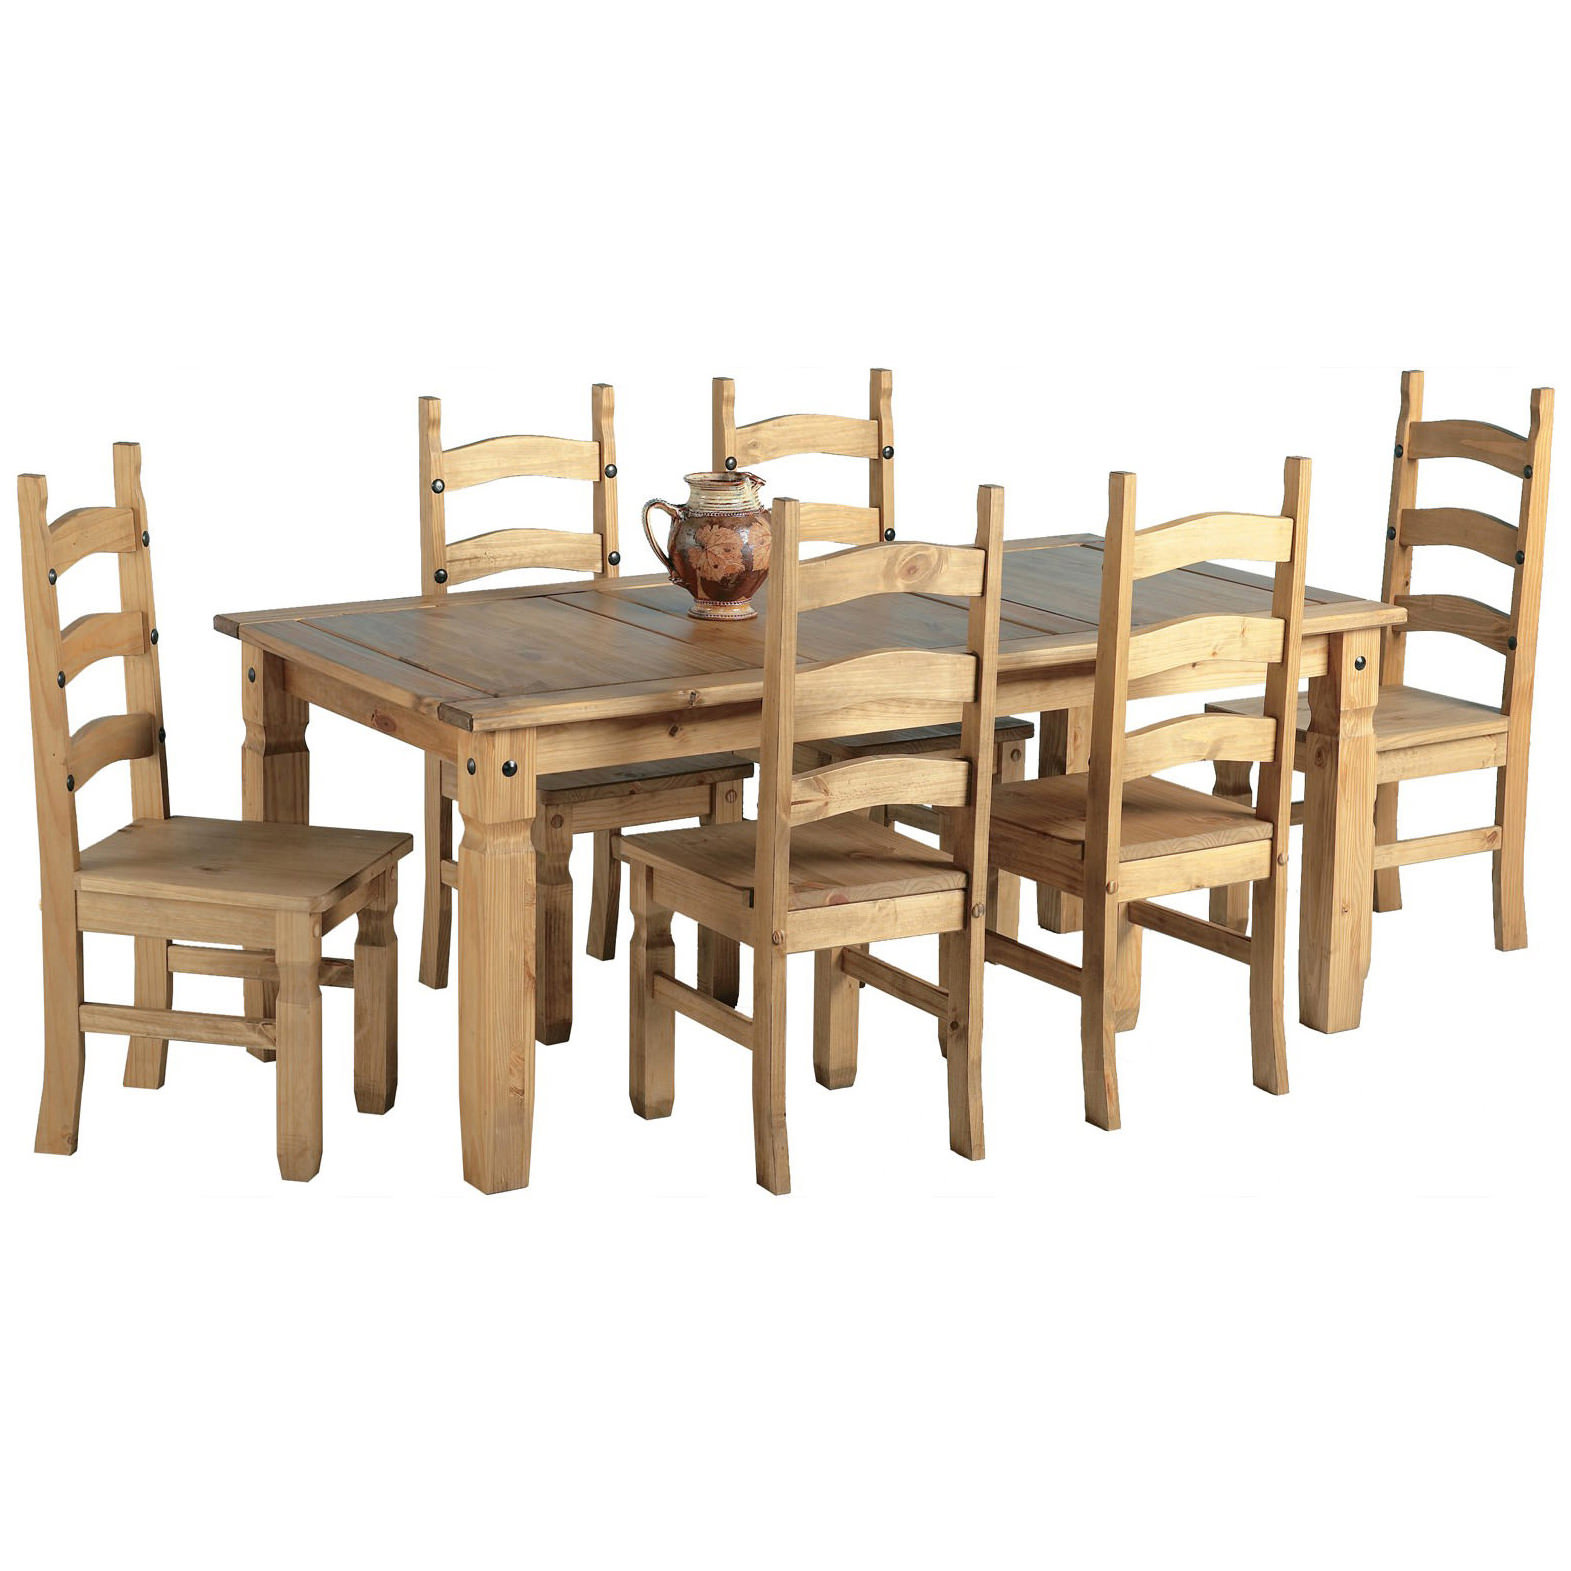 Solid Pine Light Wax Finish Dining Table And Chair Set